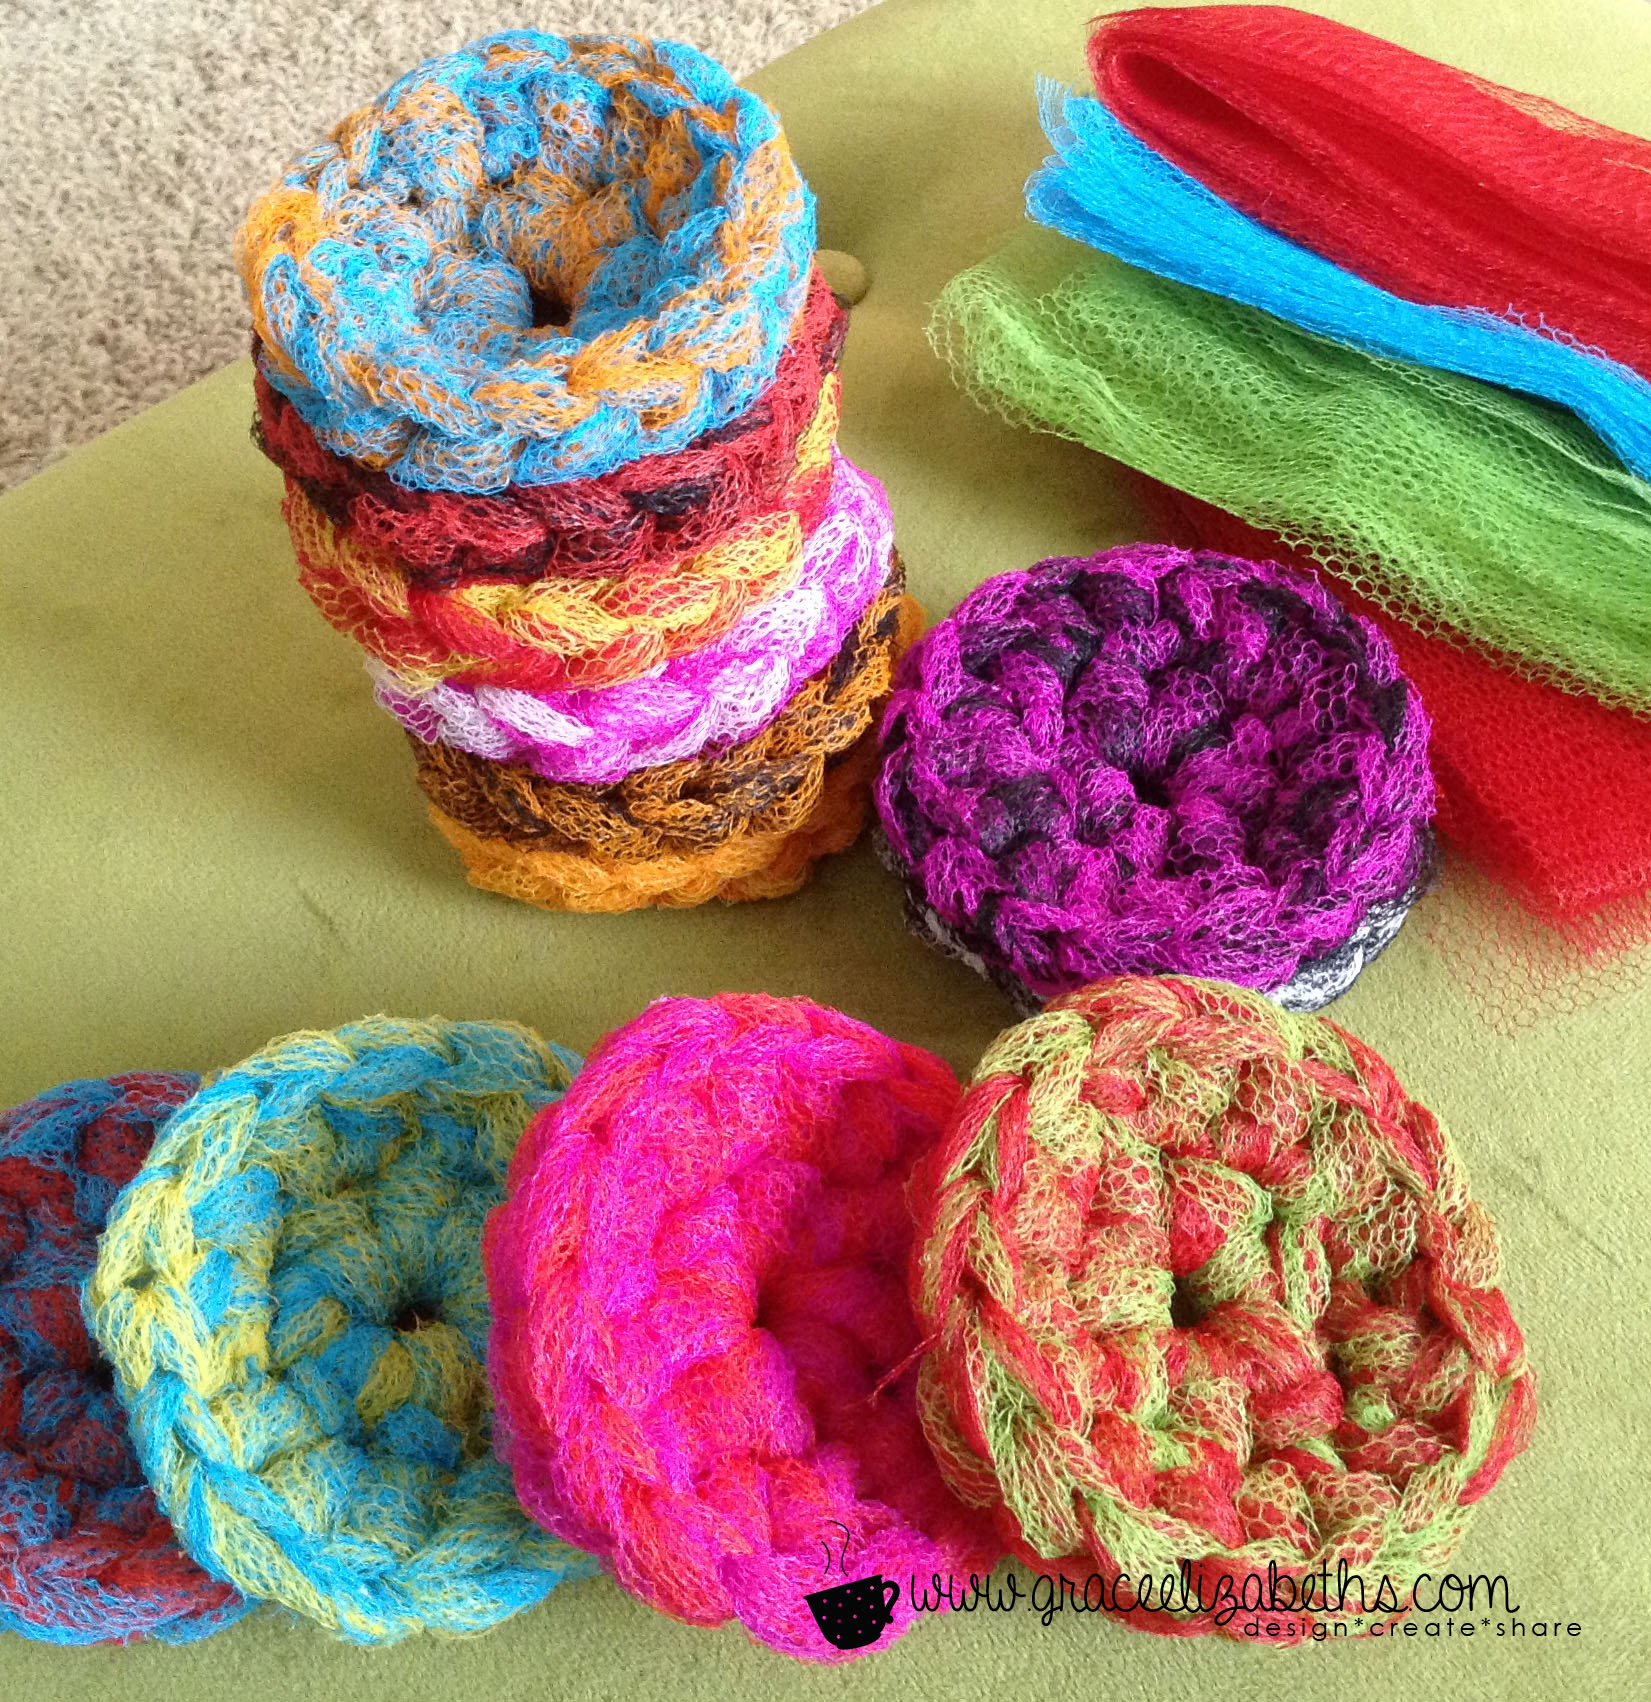 Free pattern easy pot scrubber grace elizabeths pattern easy pot scrubber what would you use these scrubbers for besides scrubbing pots and pans happy crocheting bankloansurffo Gallery